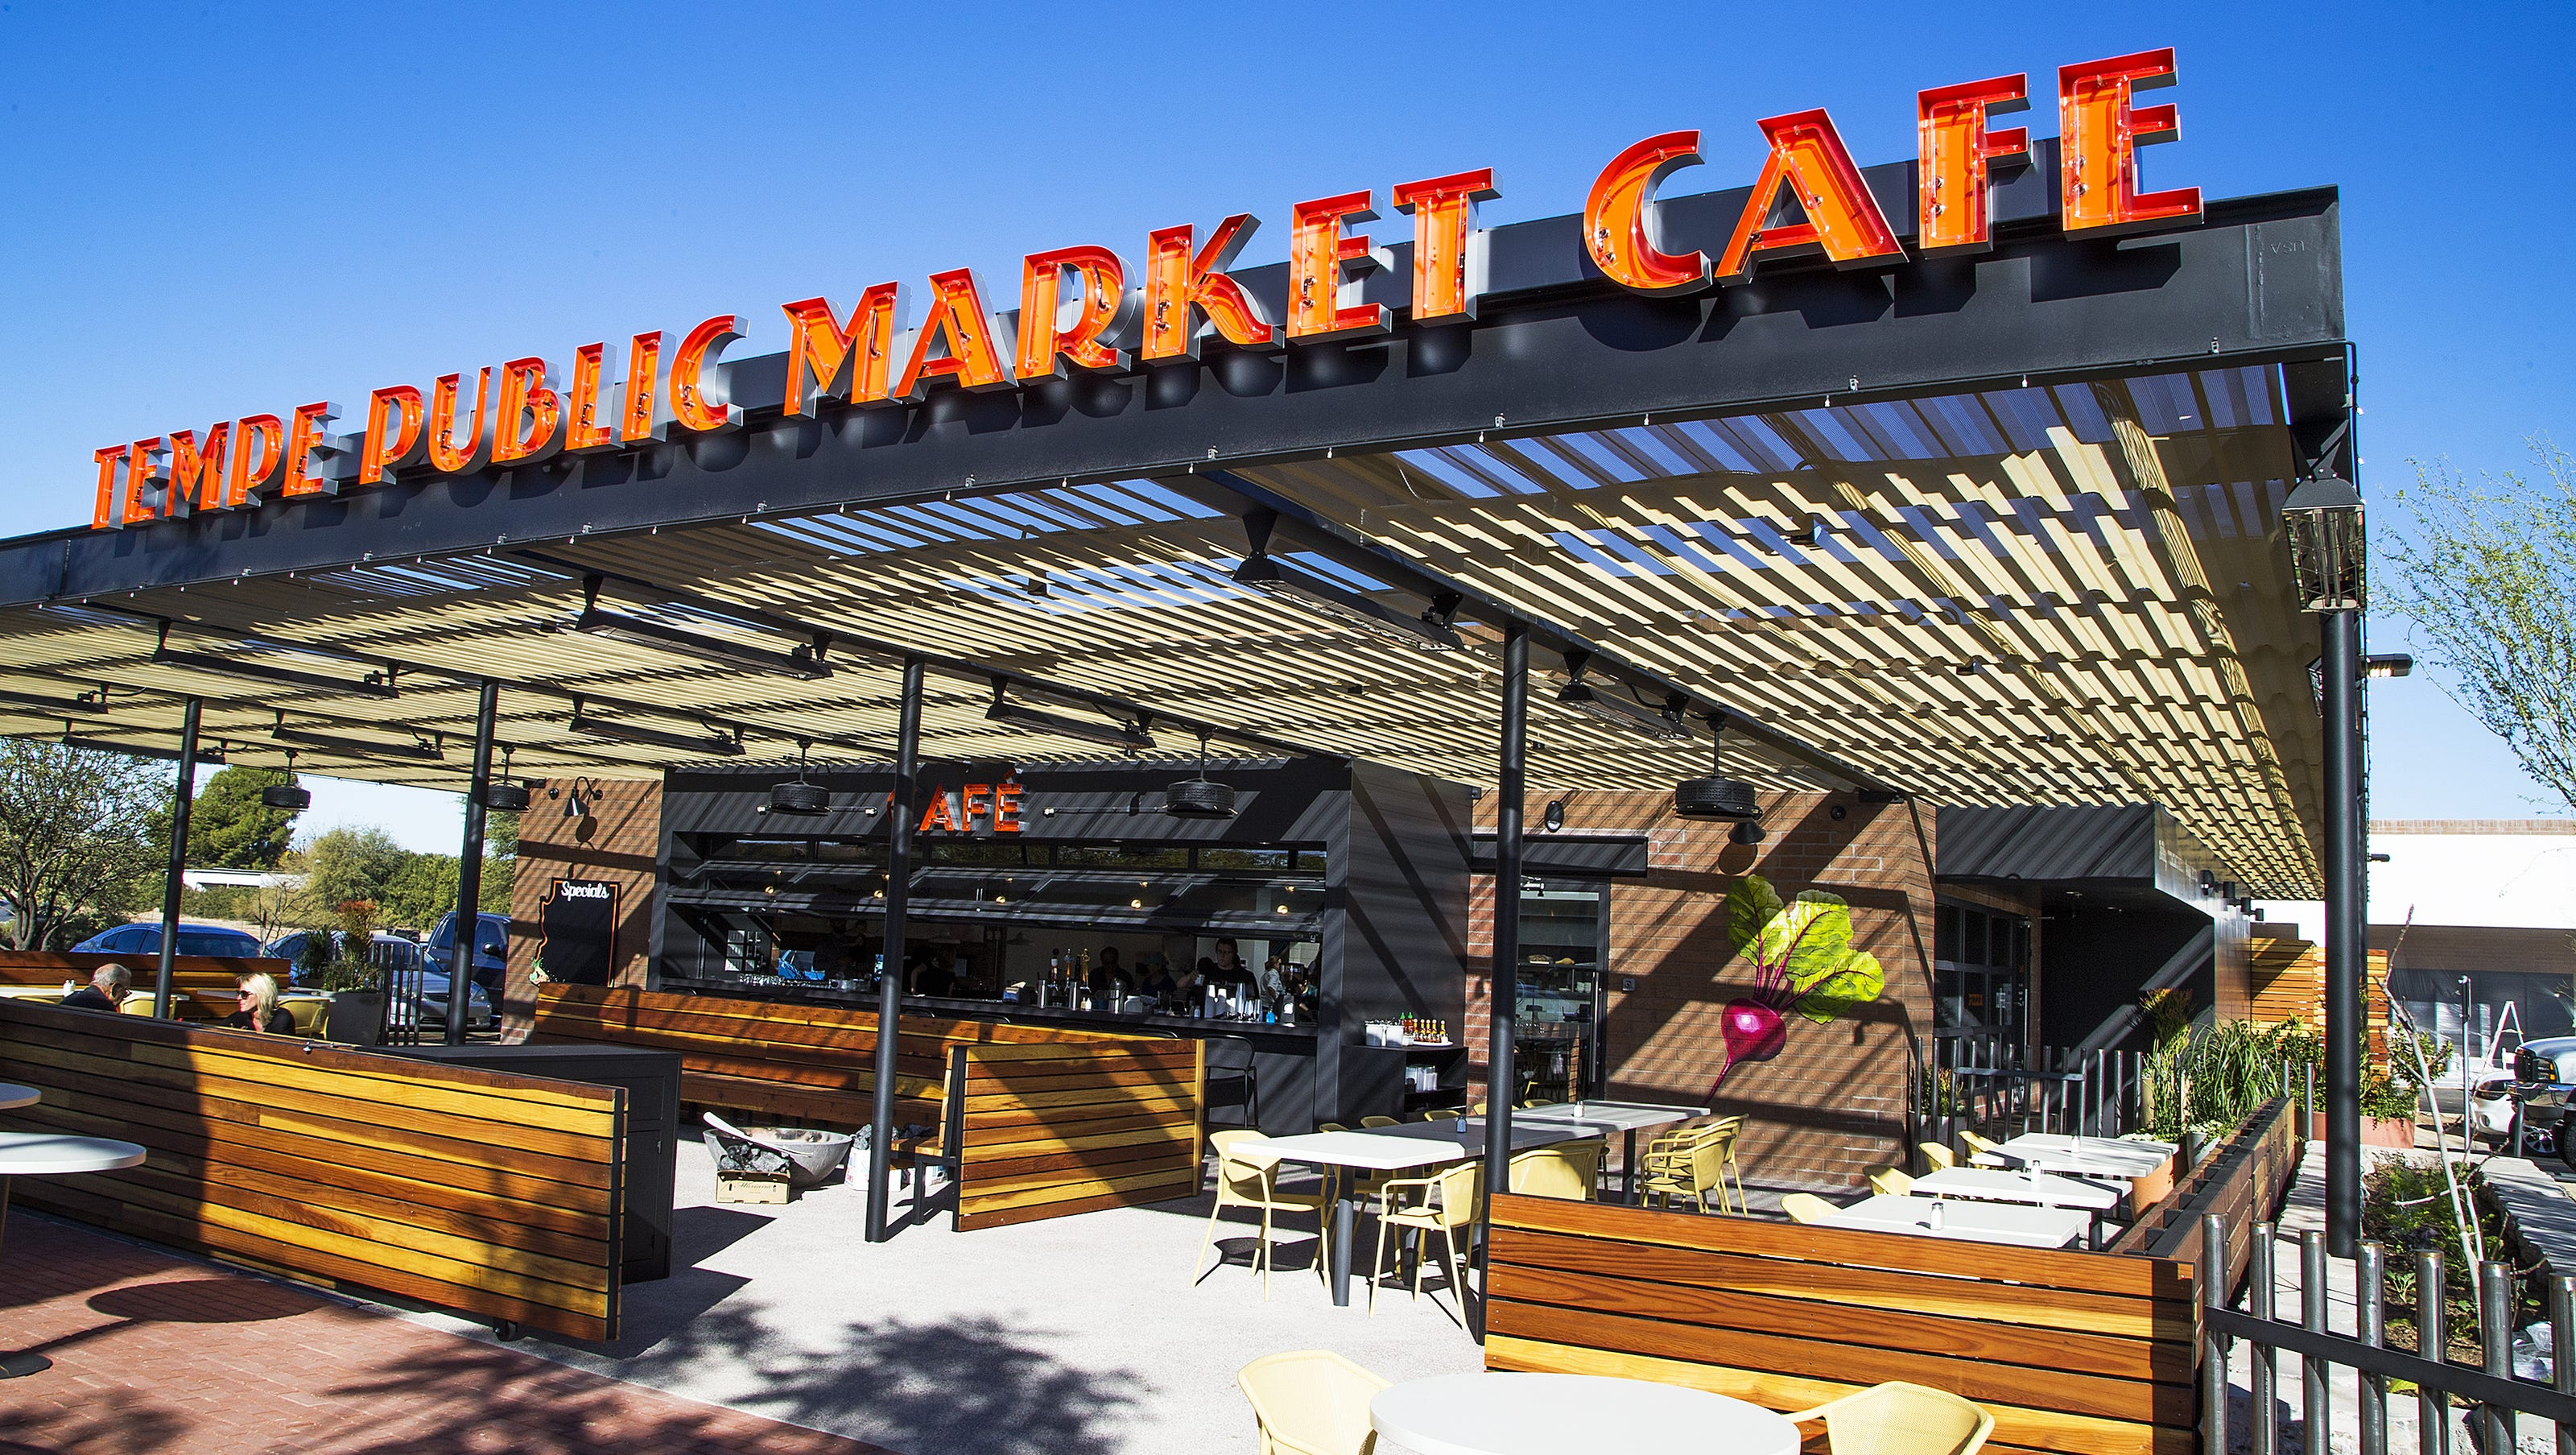 Tempe Public Market Cafe Photos Video